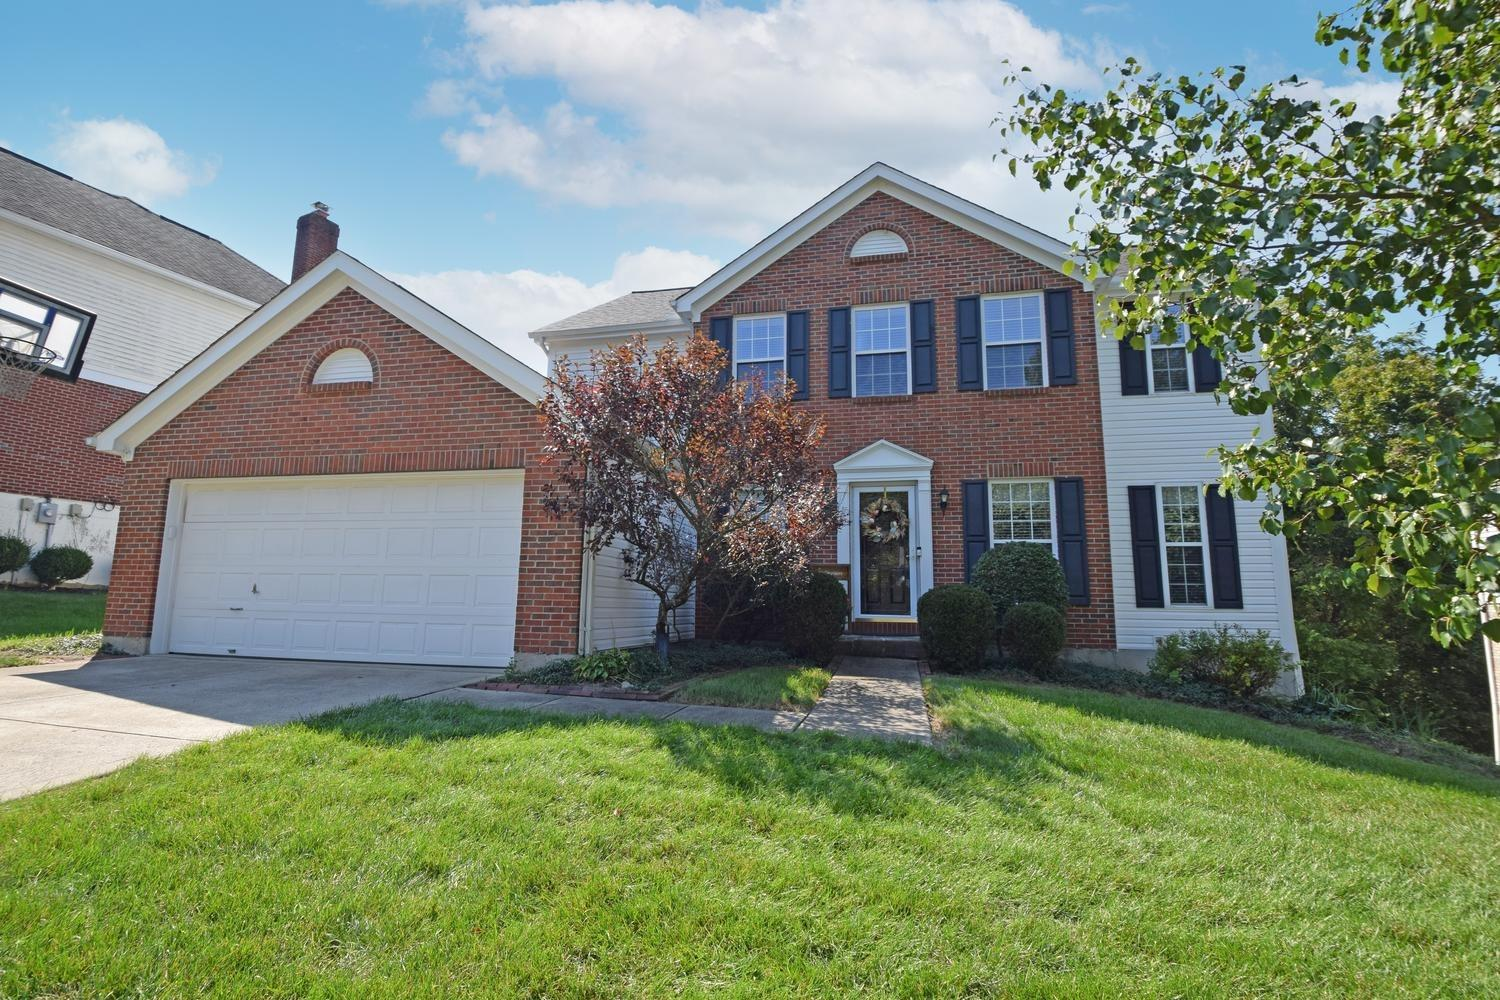 12143 Crestfield Court, Symmes Twp, Ohio 45249, 4 Bedrooms Bedrooms, 9 Rooms Rooms,2 BathroomsBathrooms,Single Family Residence,For Sale,Crestfield,1718936